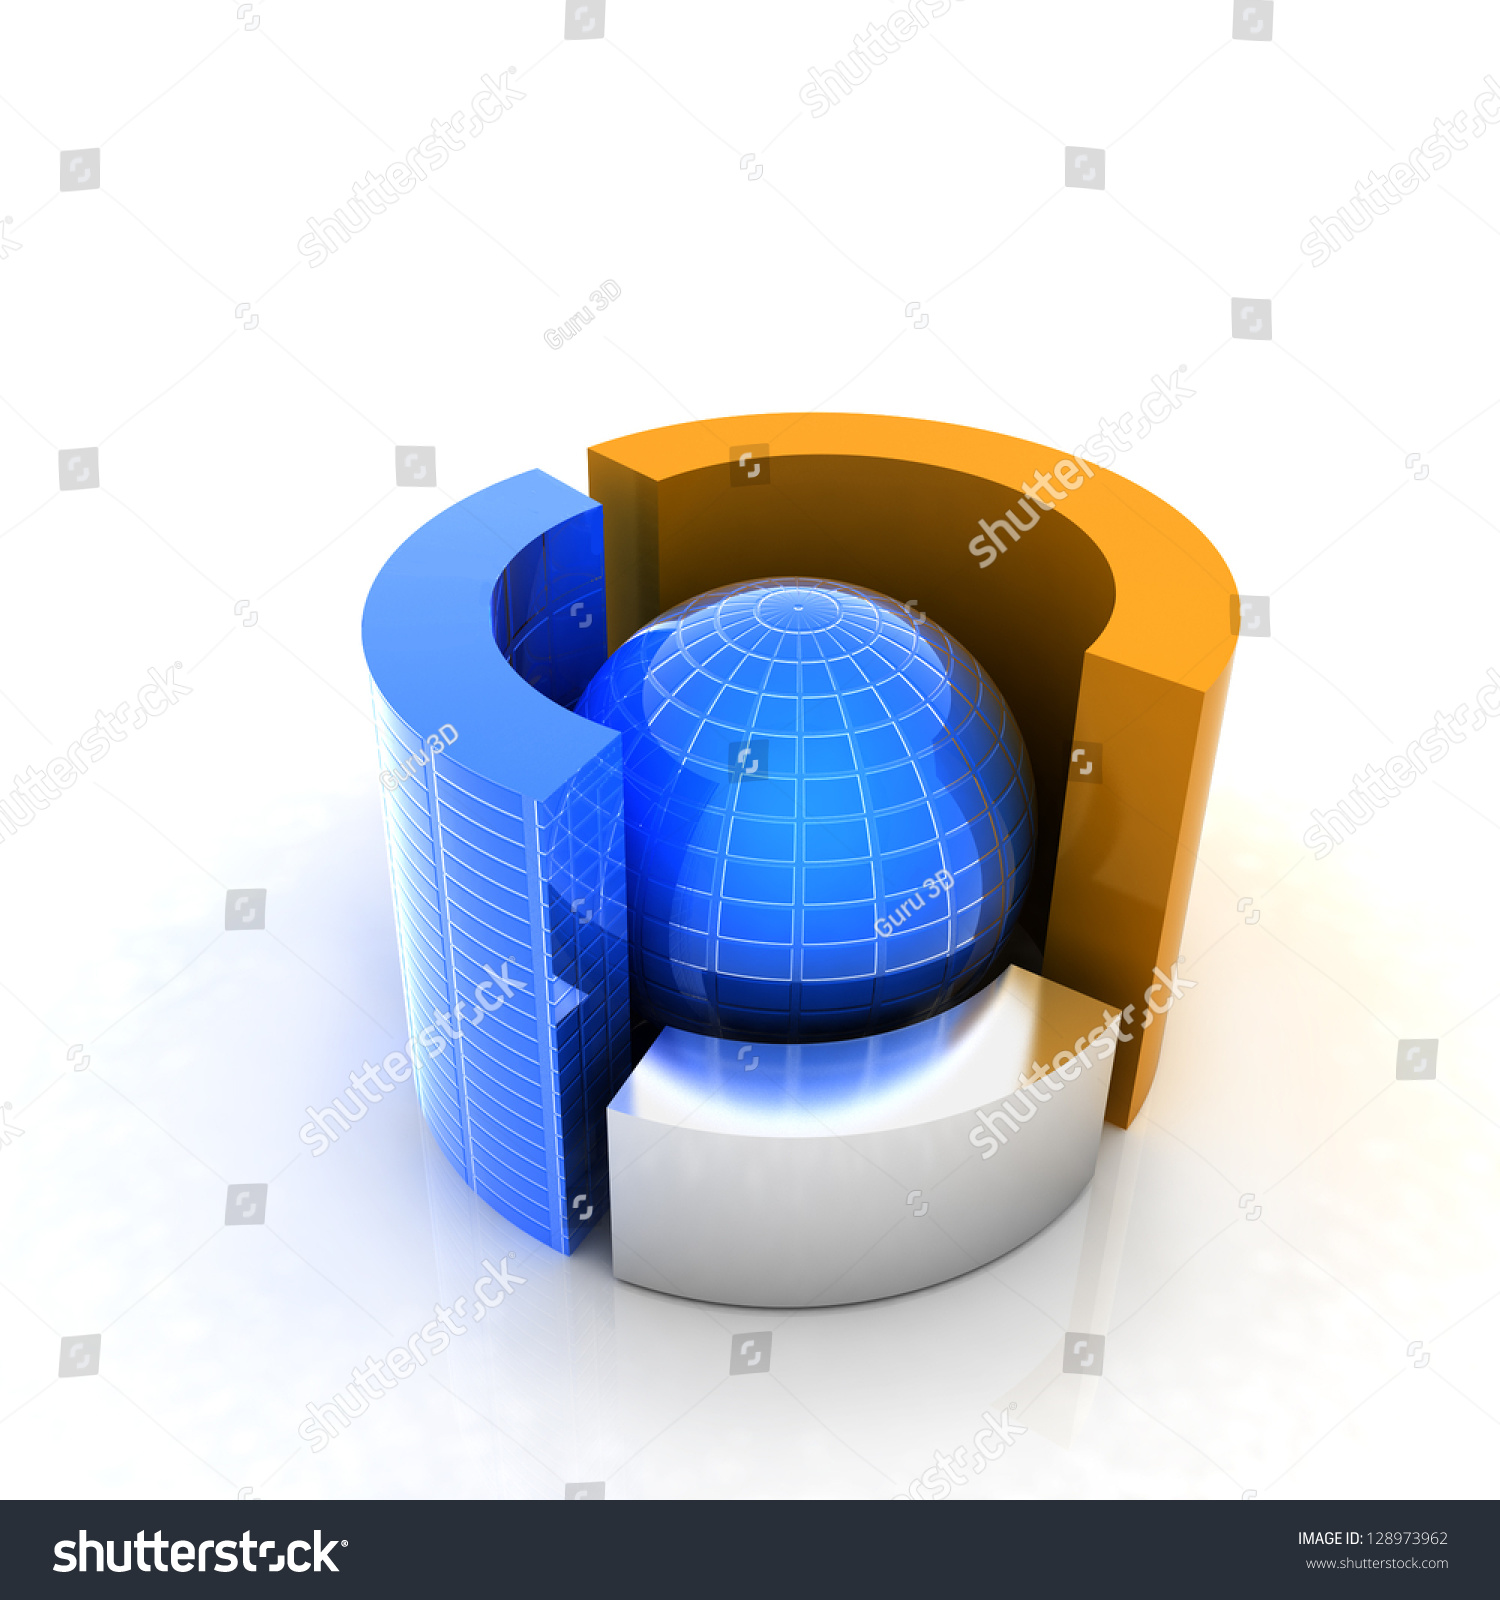 hight resolution of 3d circular diagram and sphere on white background